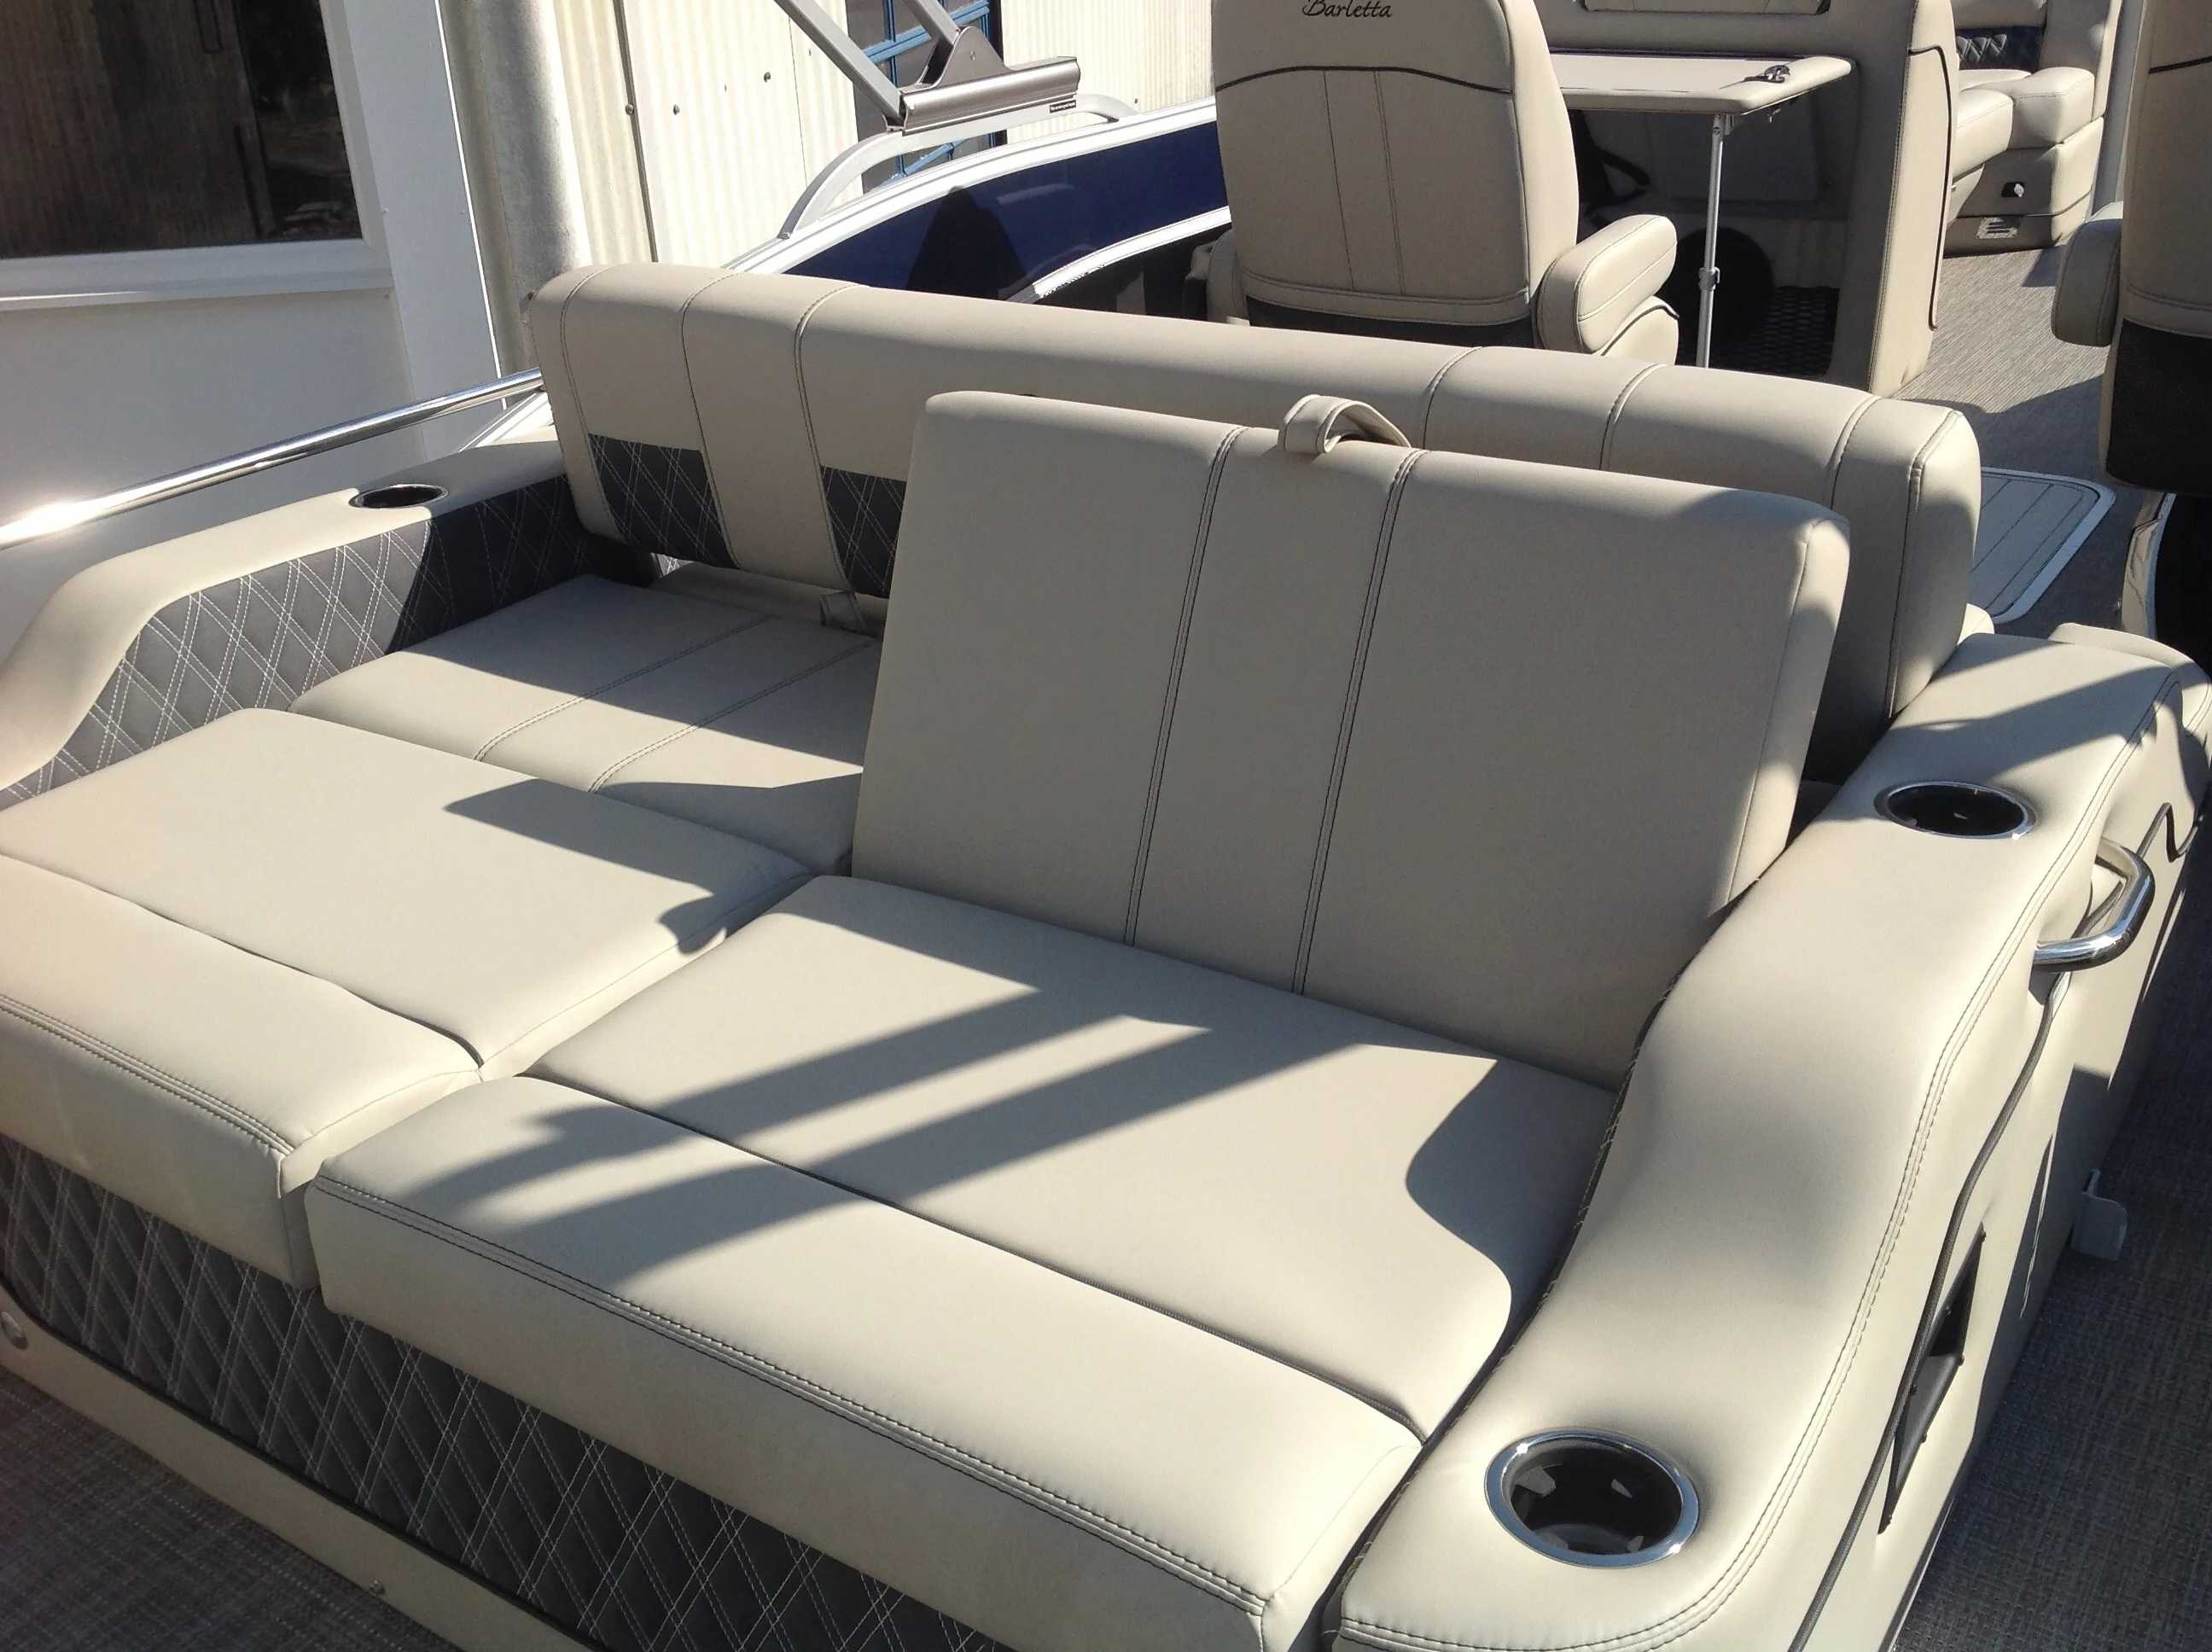 2021 Barletta boat for sale, model of the boat is L25UC & Image # 13 of 17